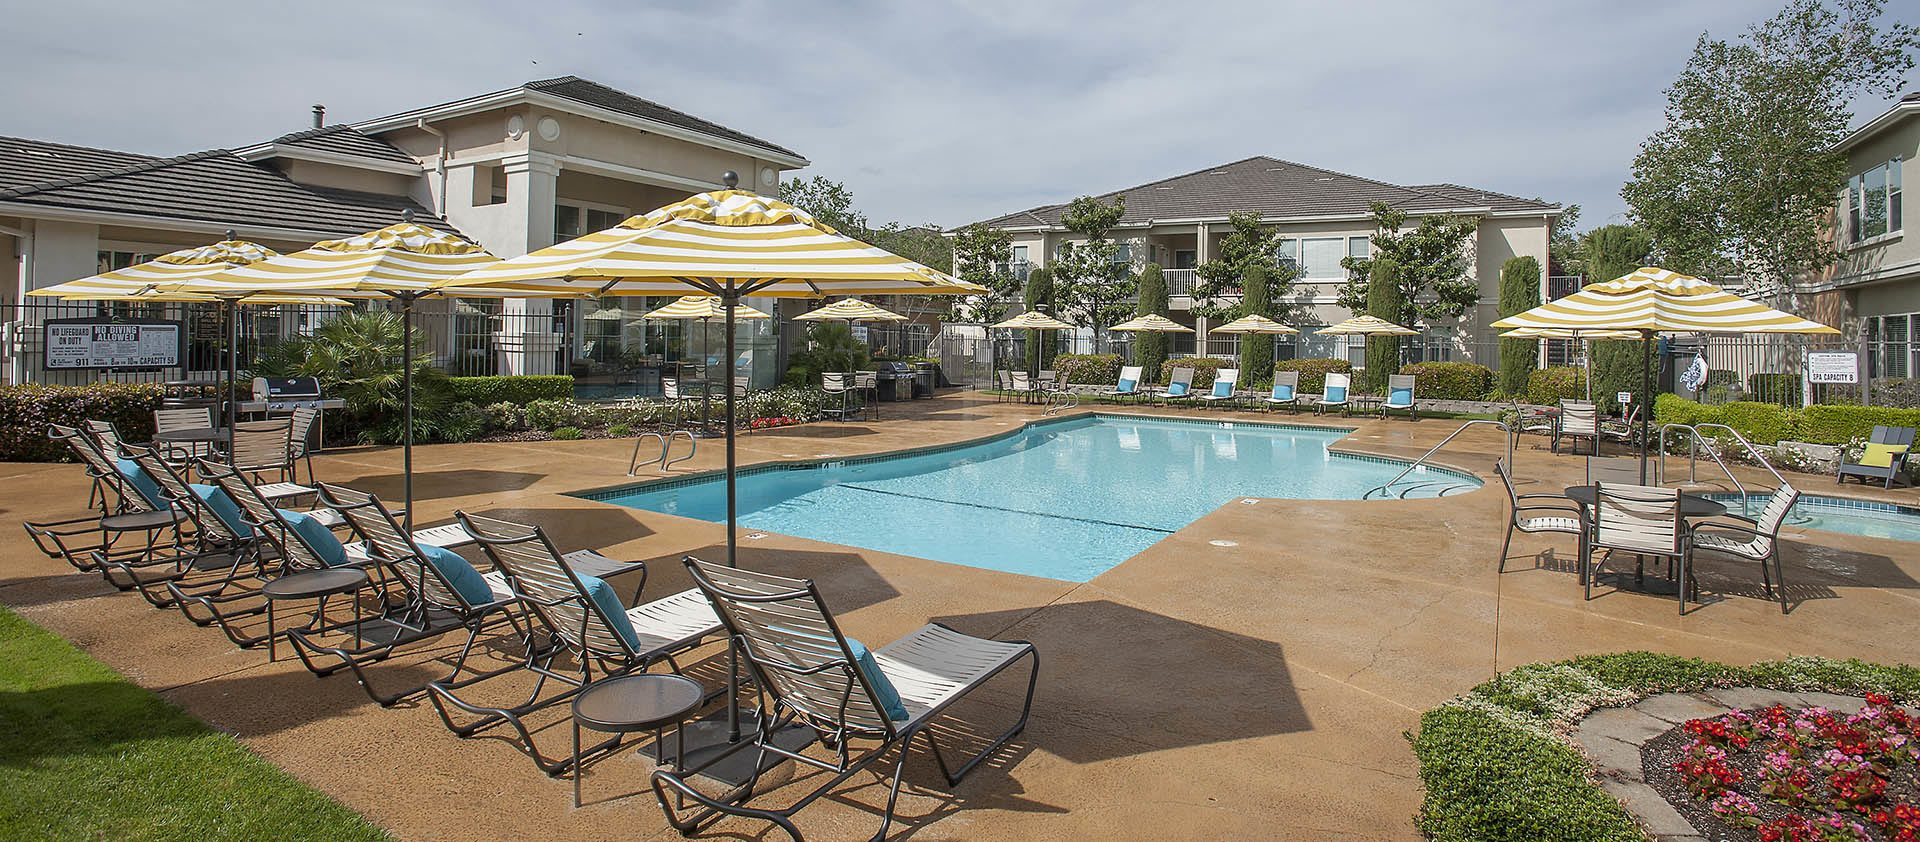 Outdoor seating by pool at Iron Point at Prairie Oaks in Folsom, California